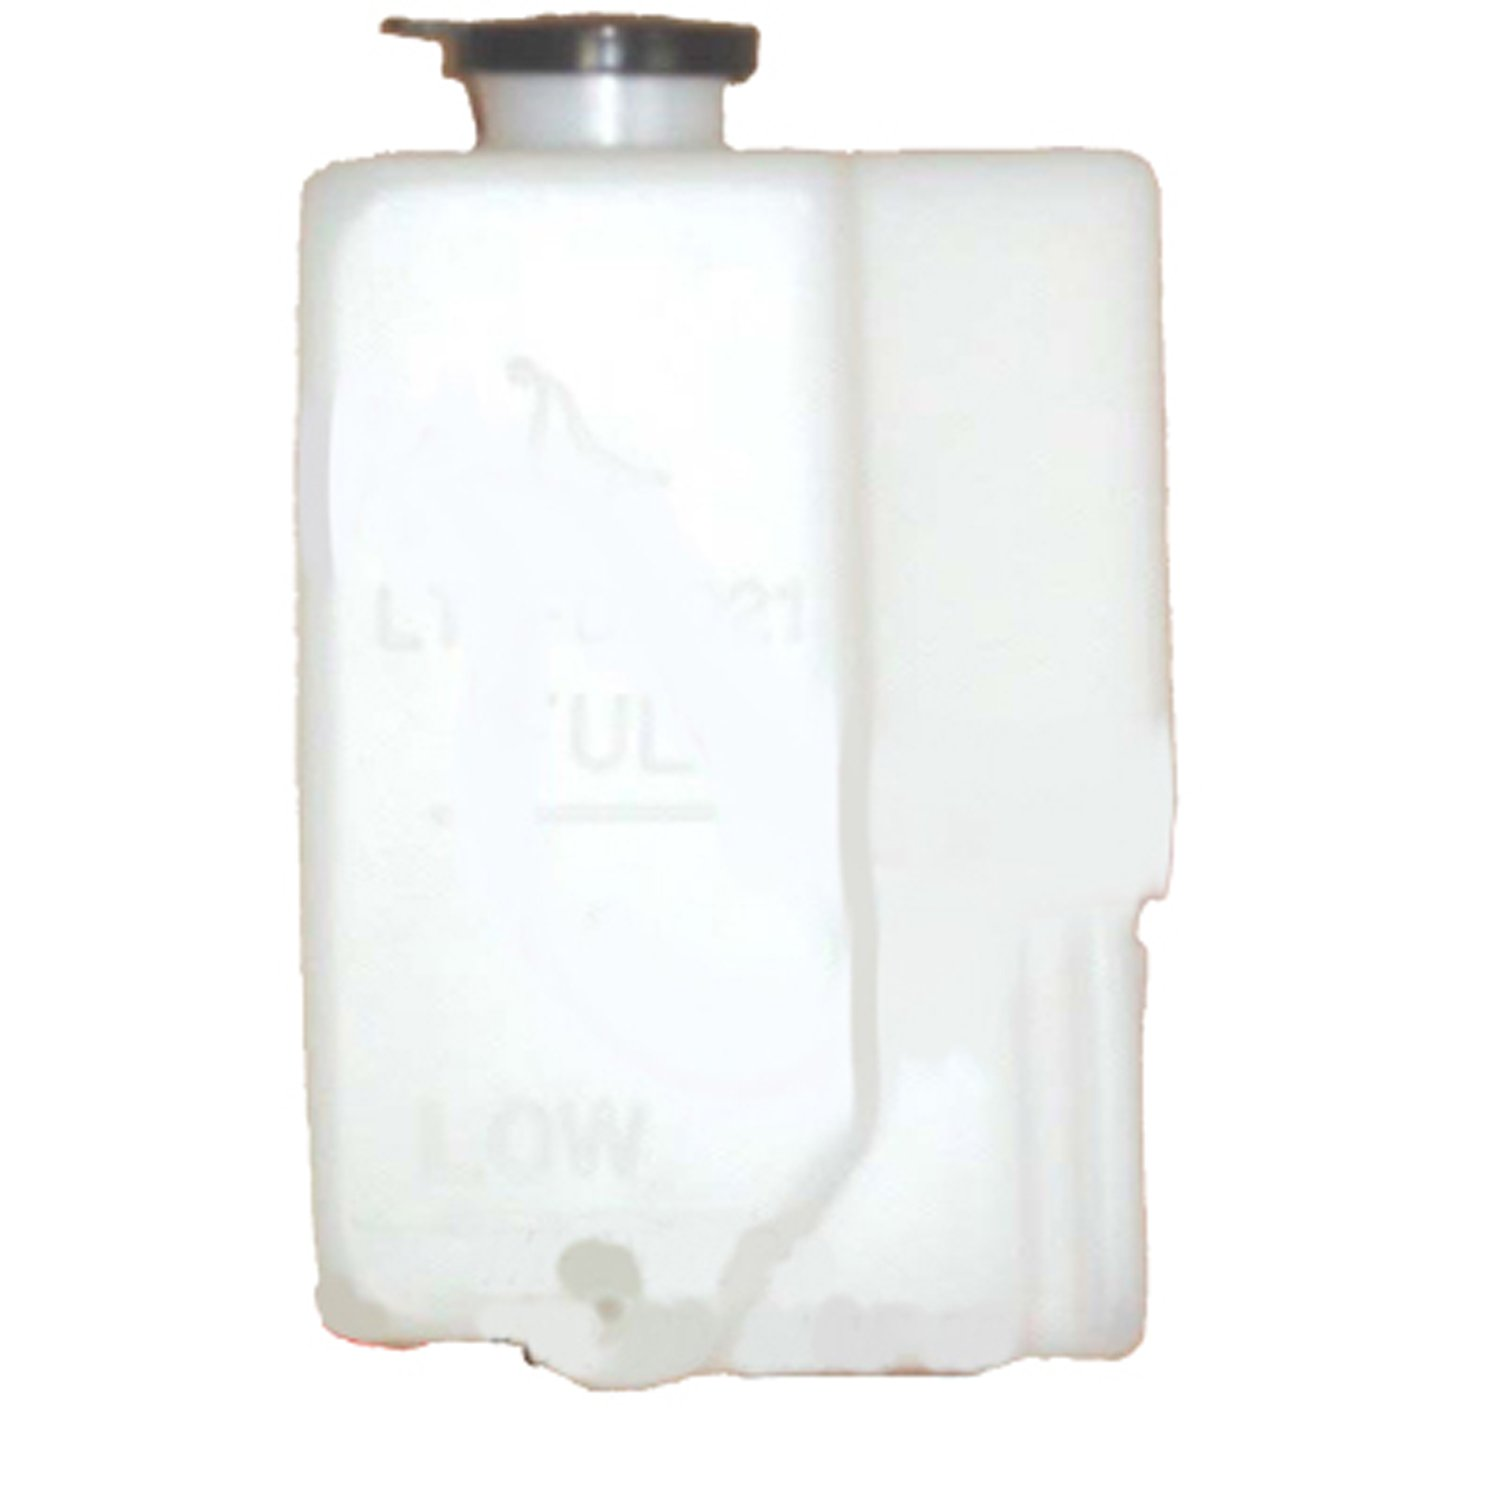 OE Replacement MAZDA PROTEGE Engine Coolant Reservoir Multiple Manufacturers MA3014102